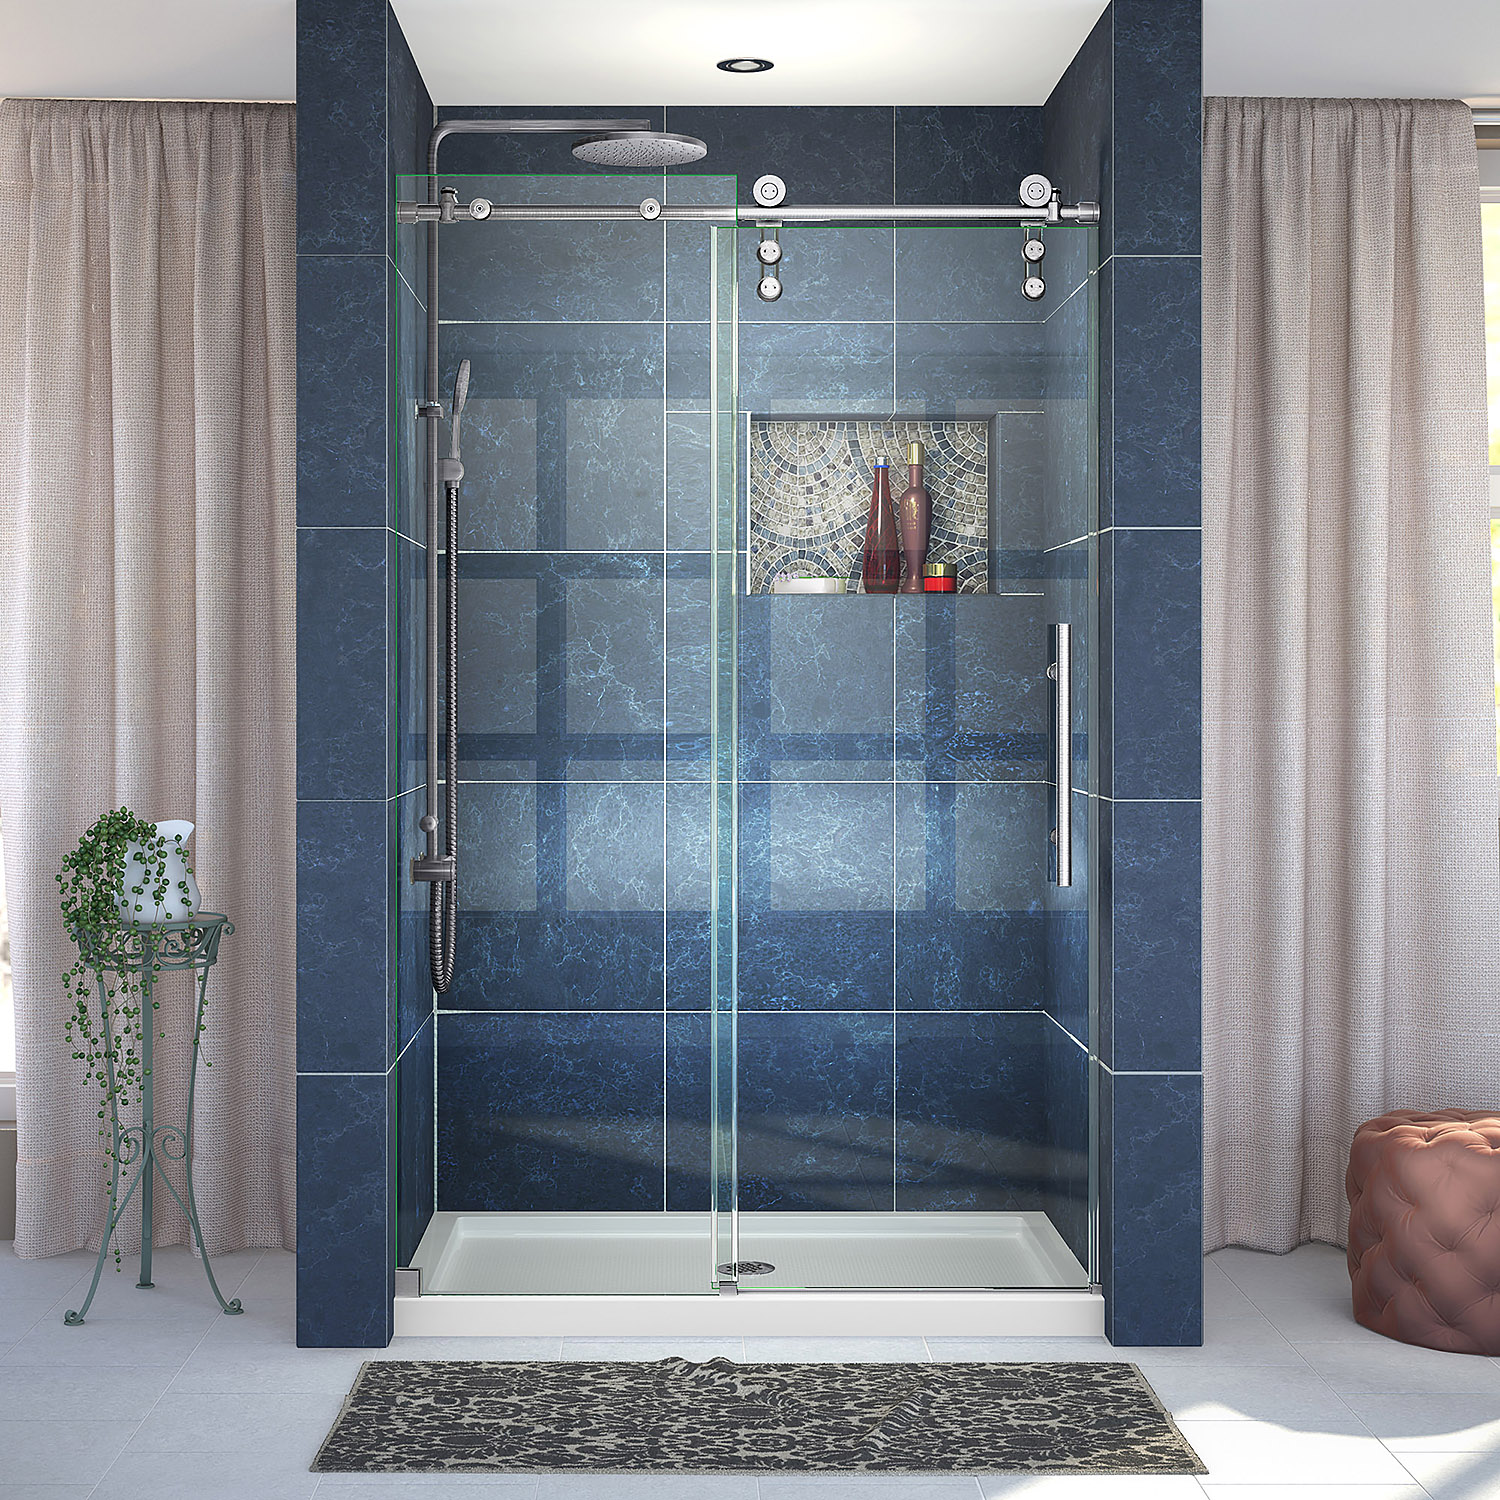 Attractive Ebay Shower Doors Gallery - Bathtub Ideas - dilata.info